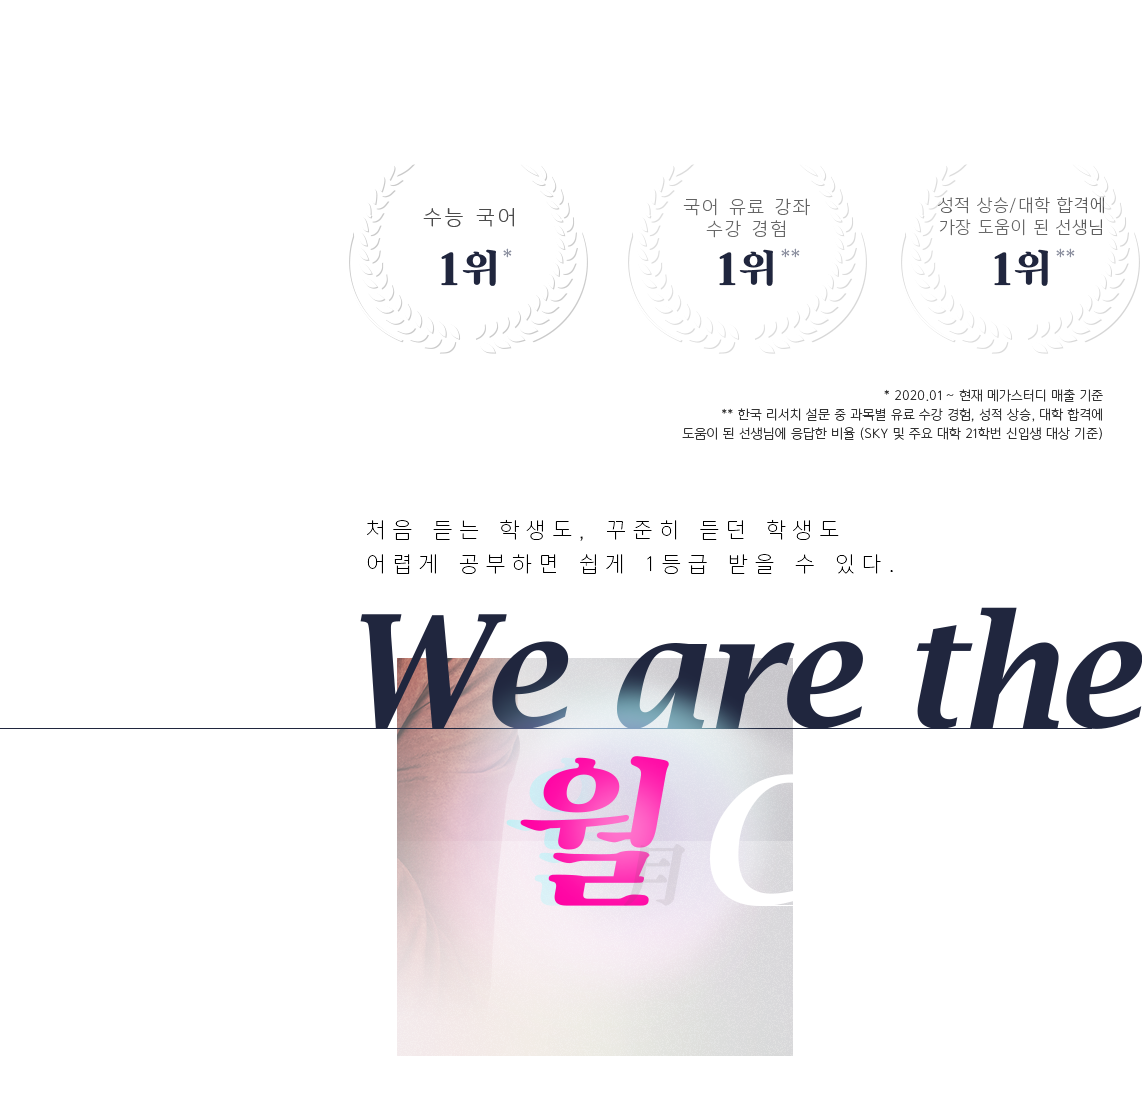 We are the 월 Class